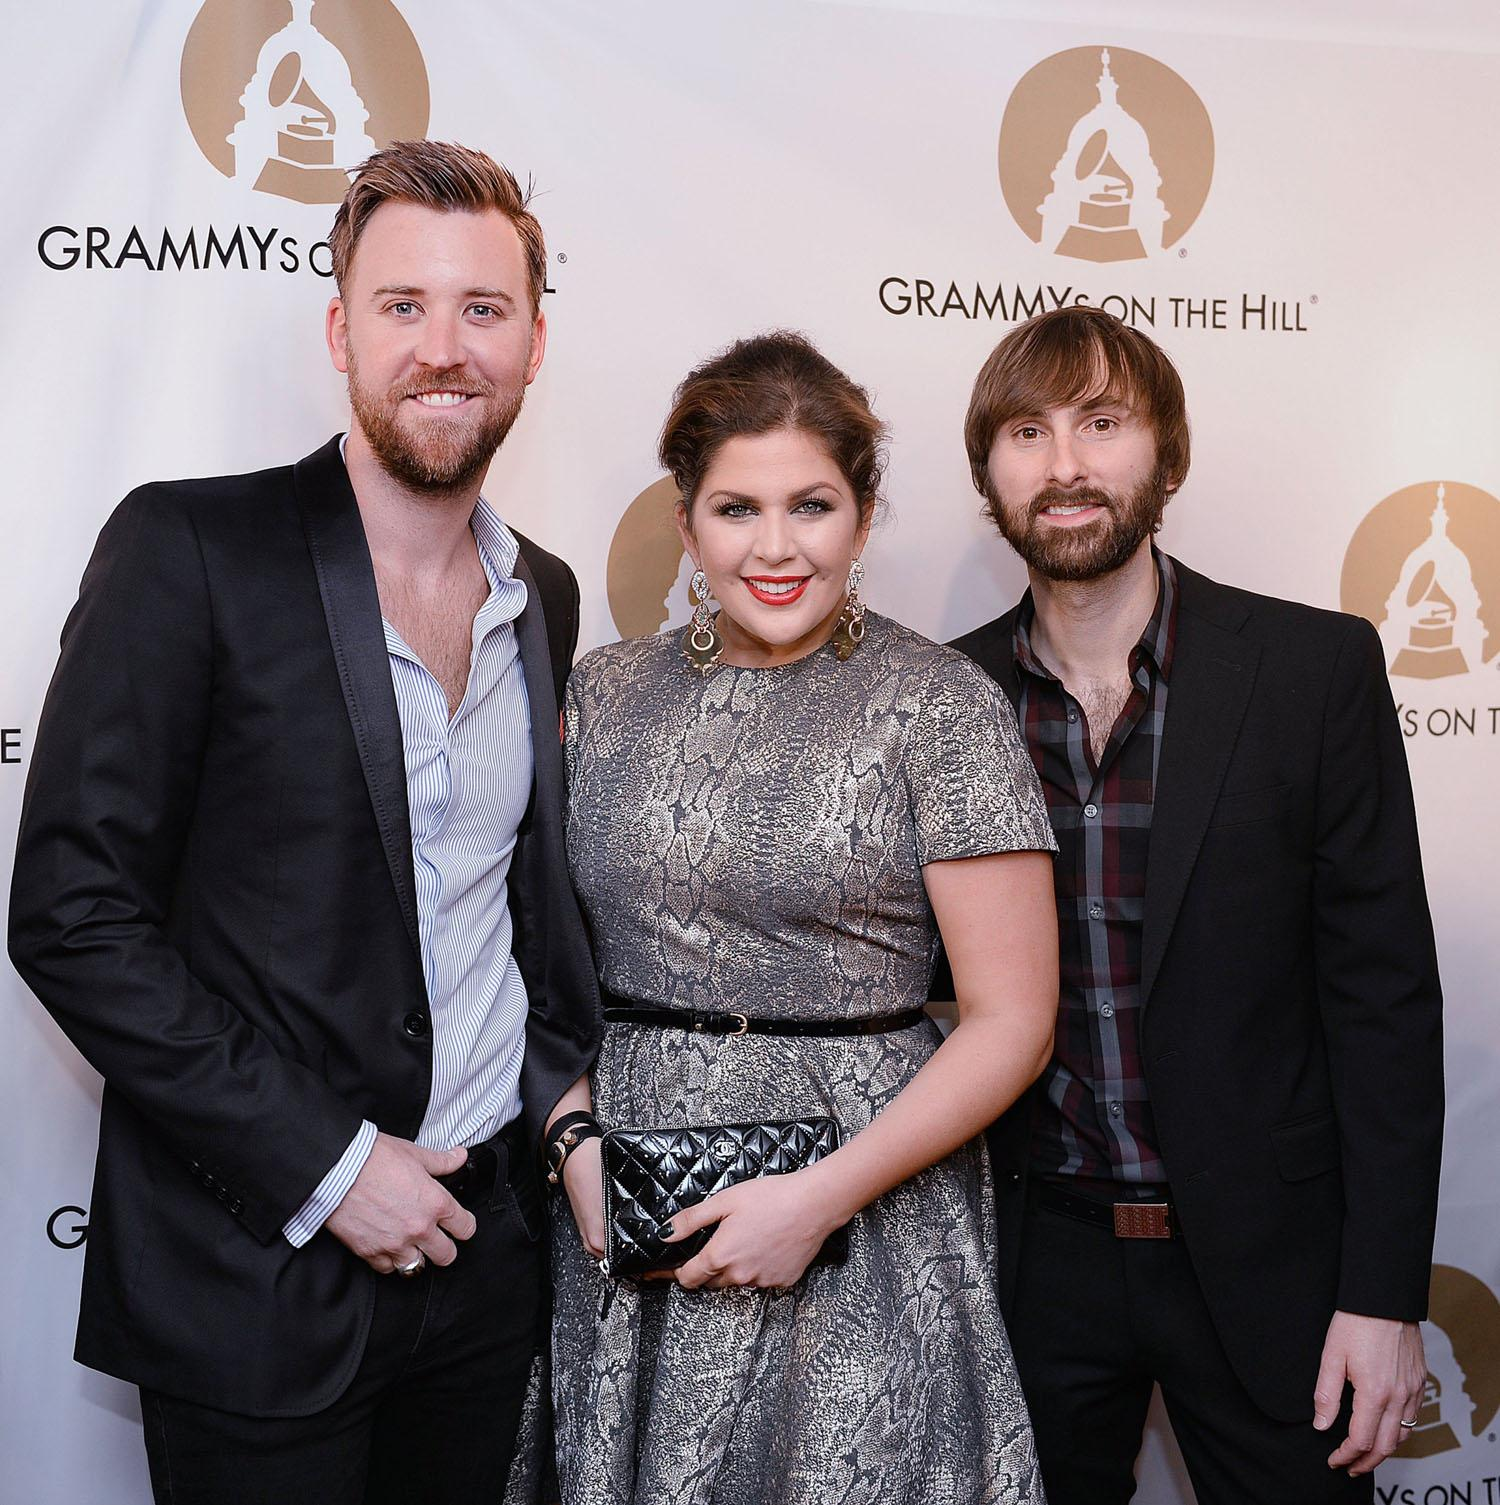 Lady Antebellum's Charles Kelley, from left, Hillary Scott and Dave Haywood attend the Grammy's on the Hill in Washington, D.C., on Wednesday, April 2, 2014. (Olivier Douliery/Abaca Press/MCT)